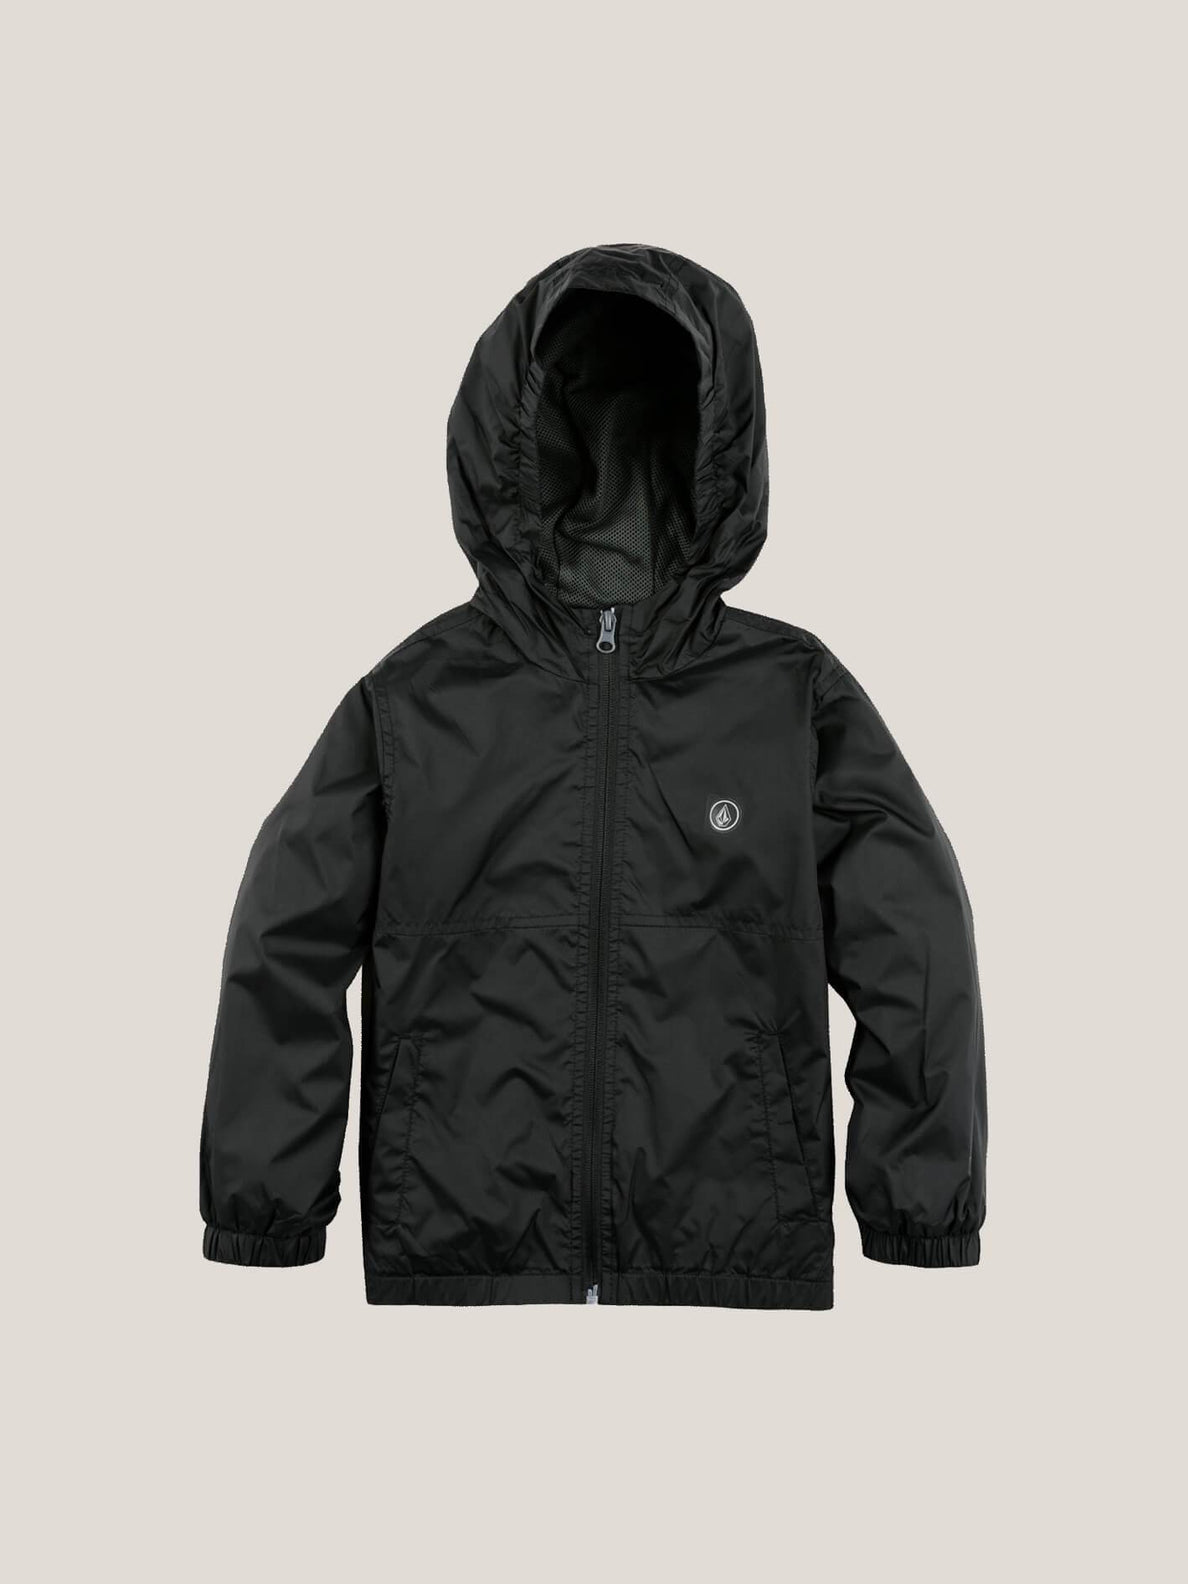 Little Boy's Ermont Jacket In Black, Front View